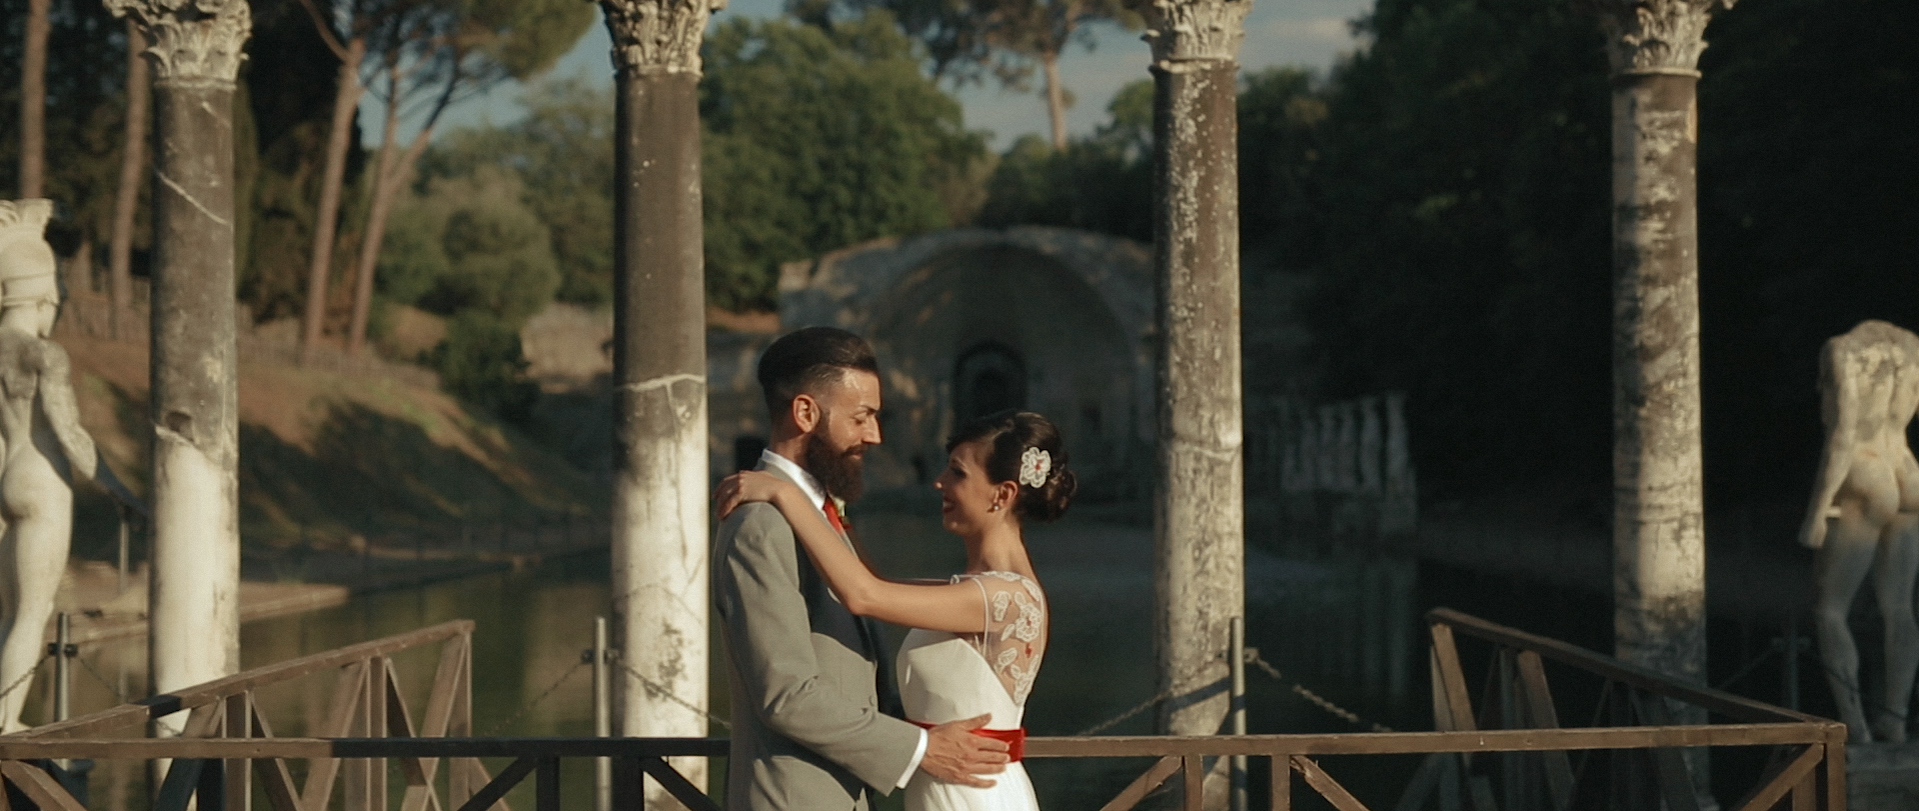 Intimate wedding video in rome 10